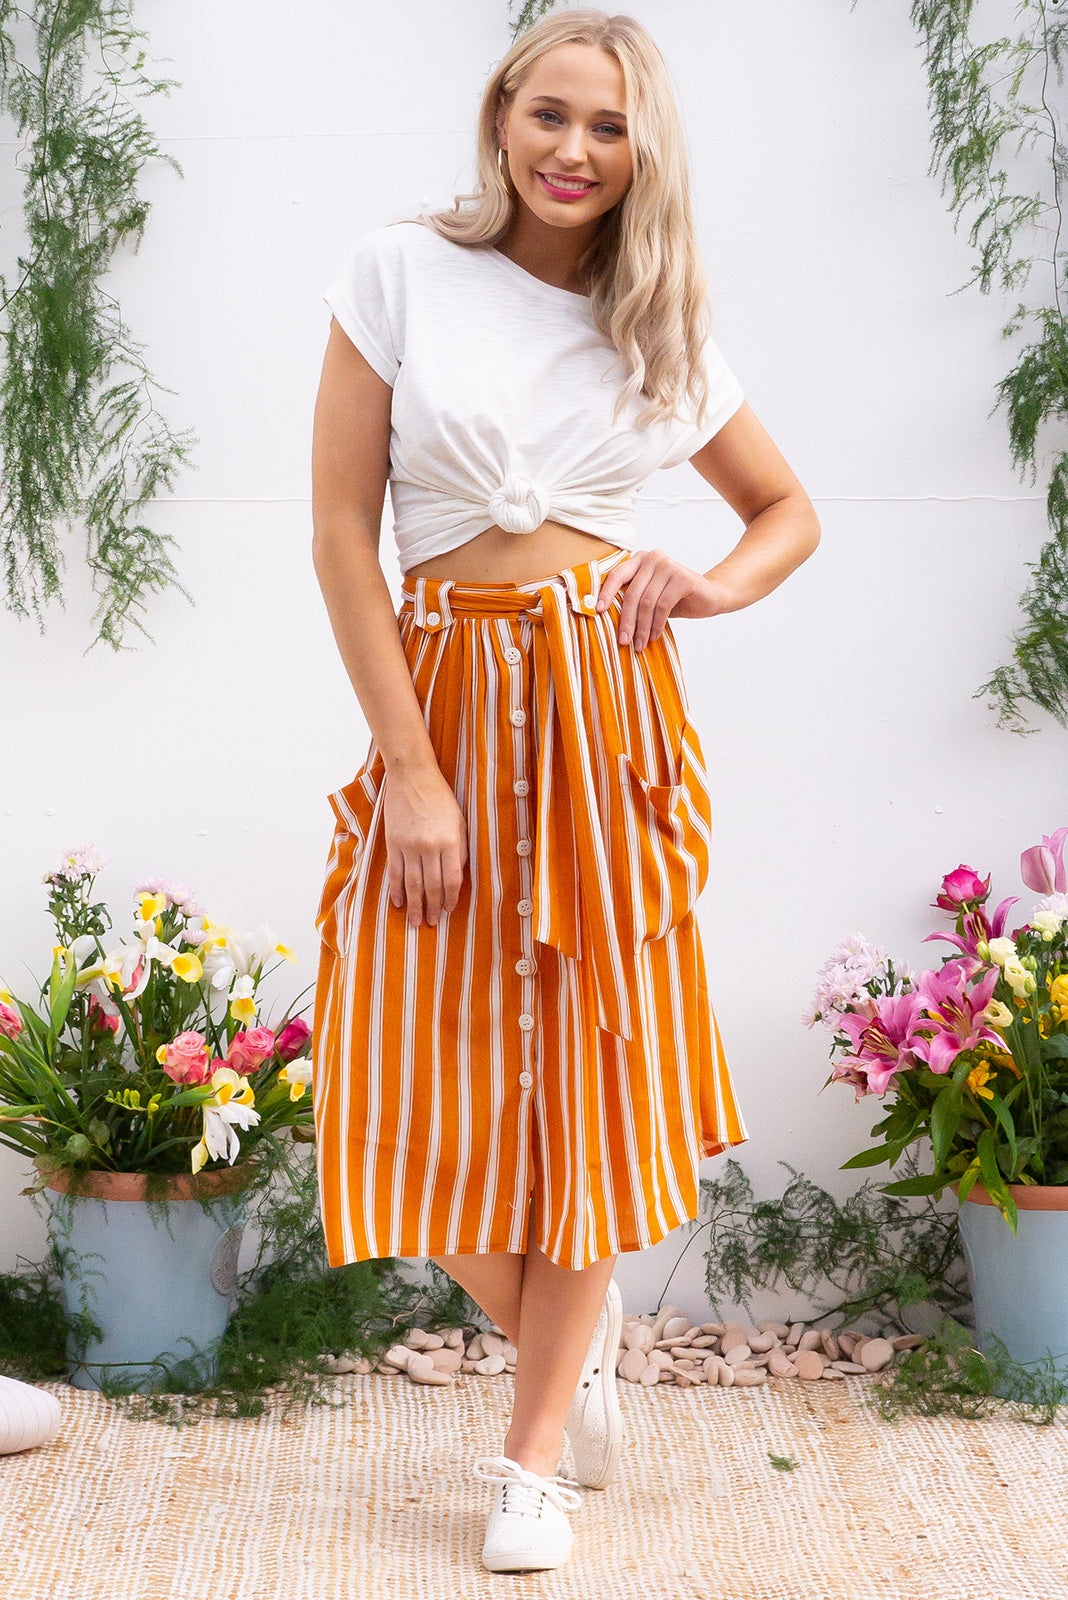 Luisa Burnt Orange button front crinkle textured 100% rayon skirt with 2 deep front pockets, an elastic waistband, and self belt in a bright burnt orange retro inspired stripe